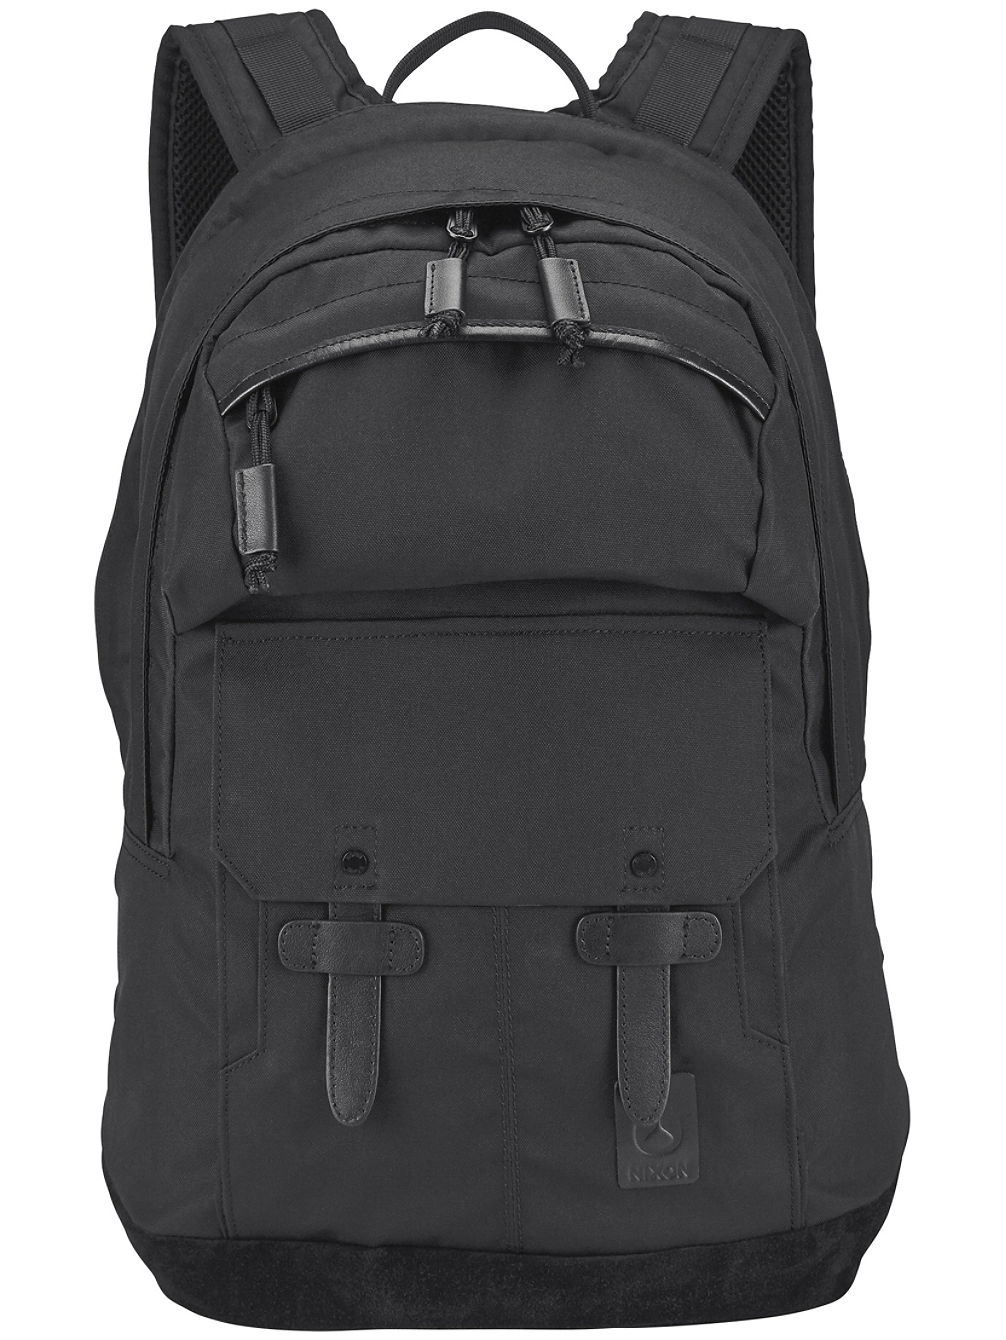 Canyon Backpack